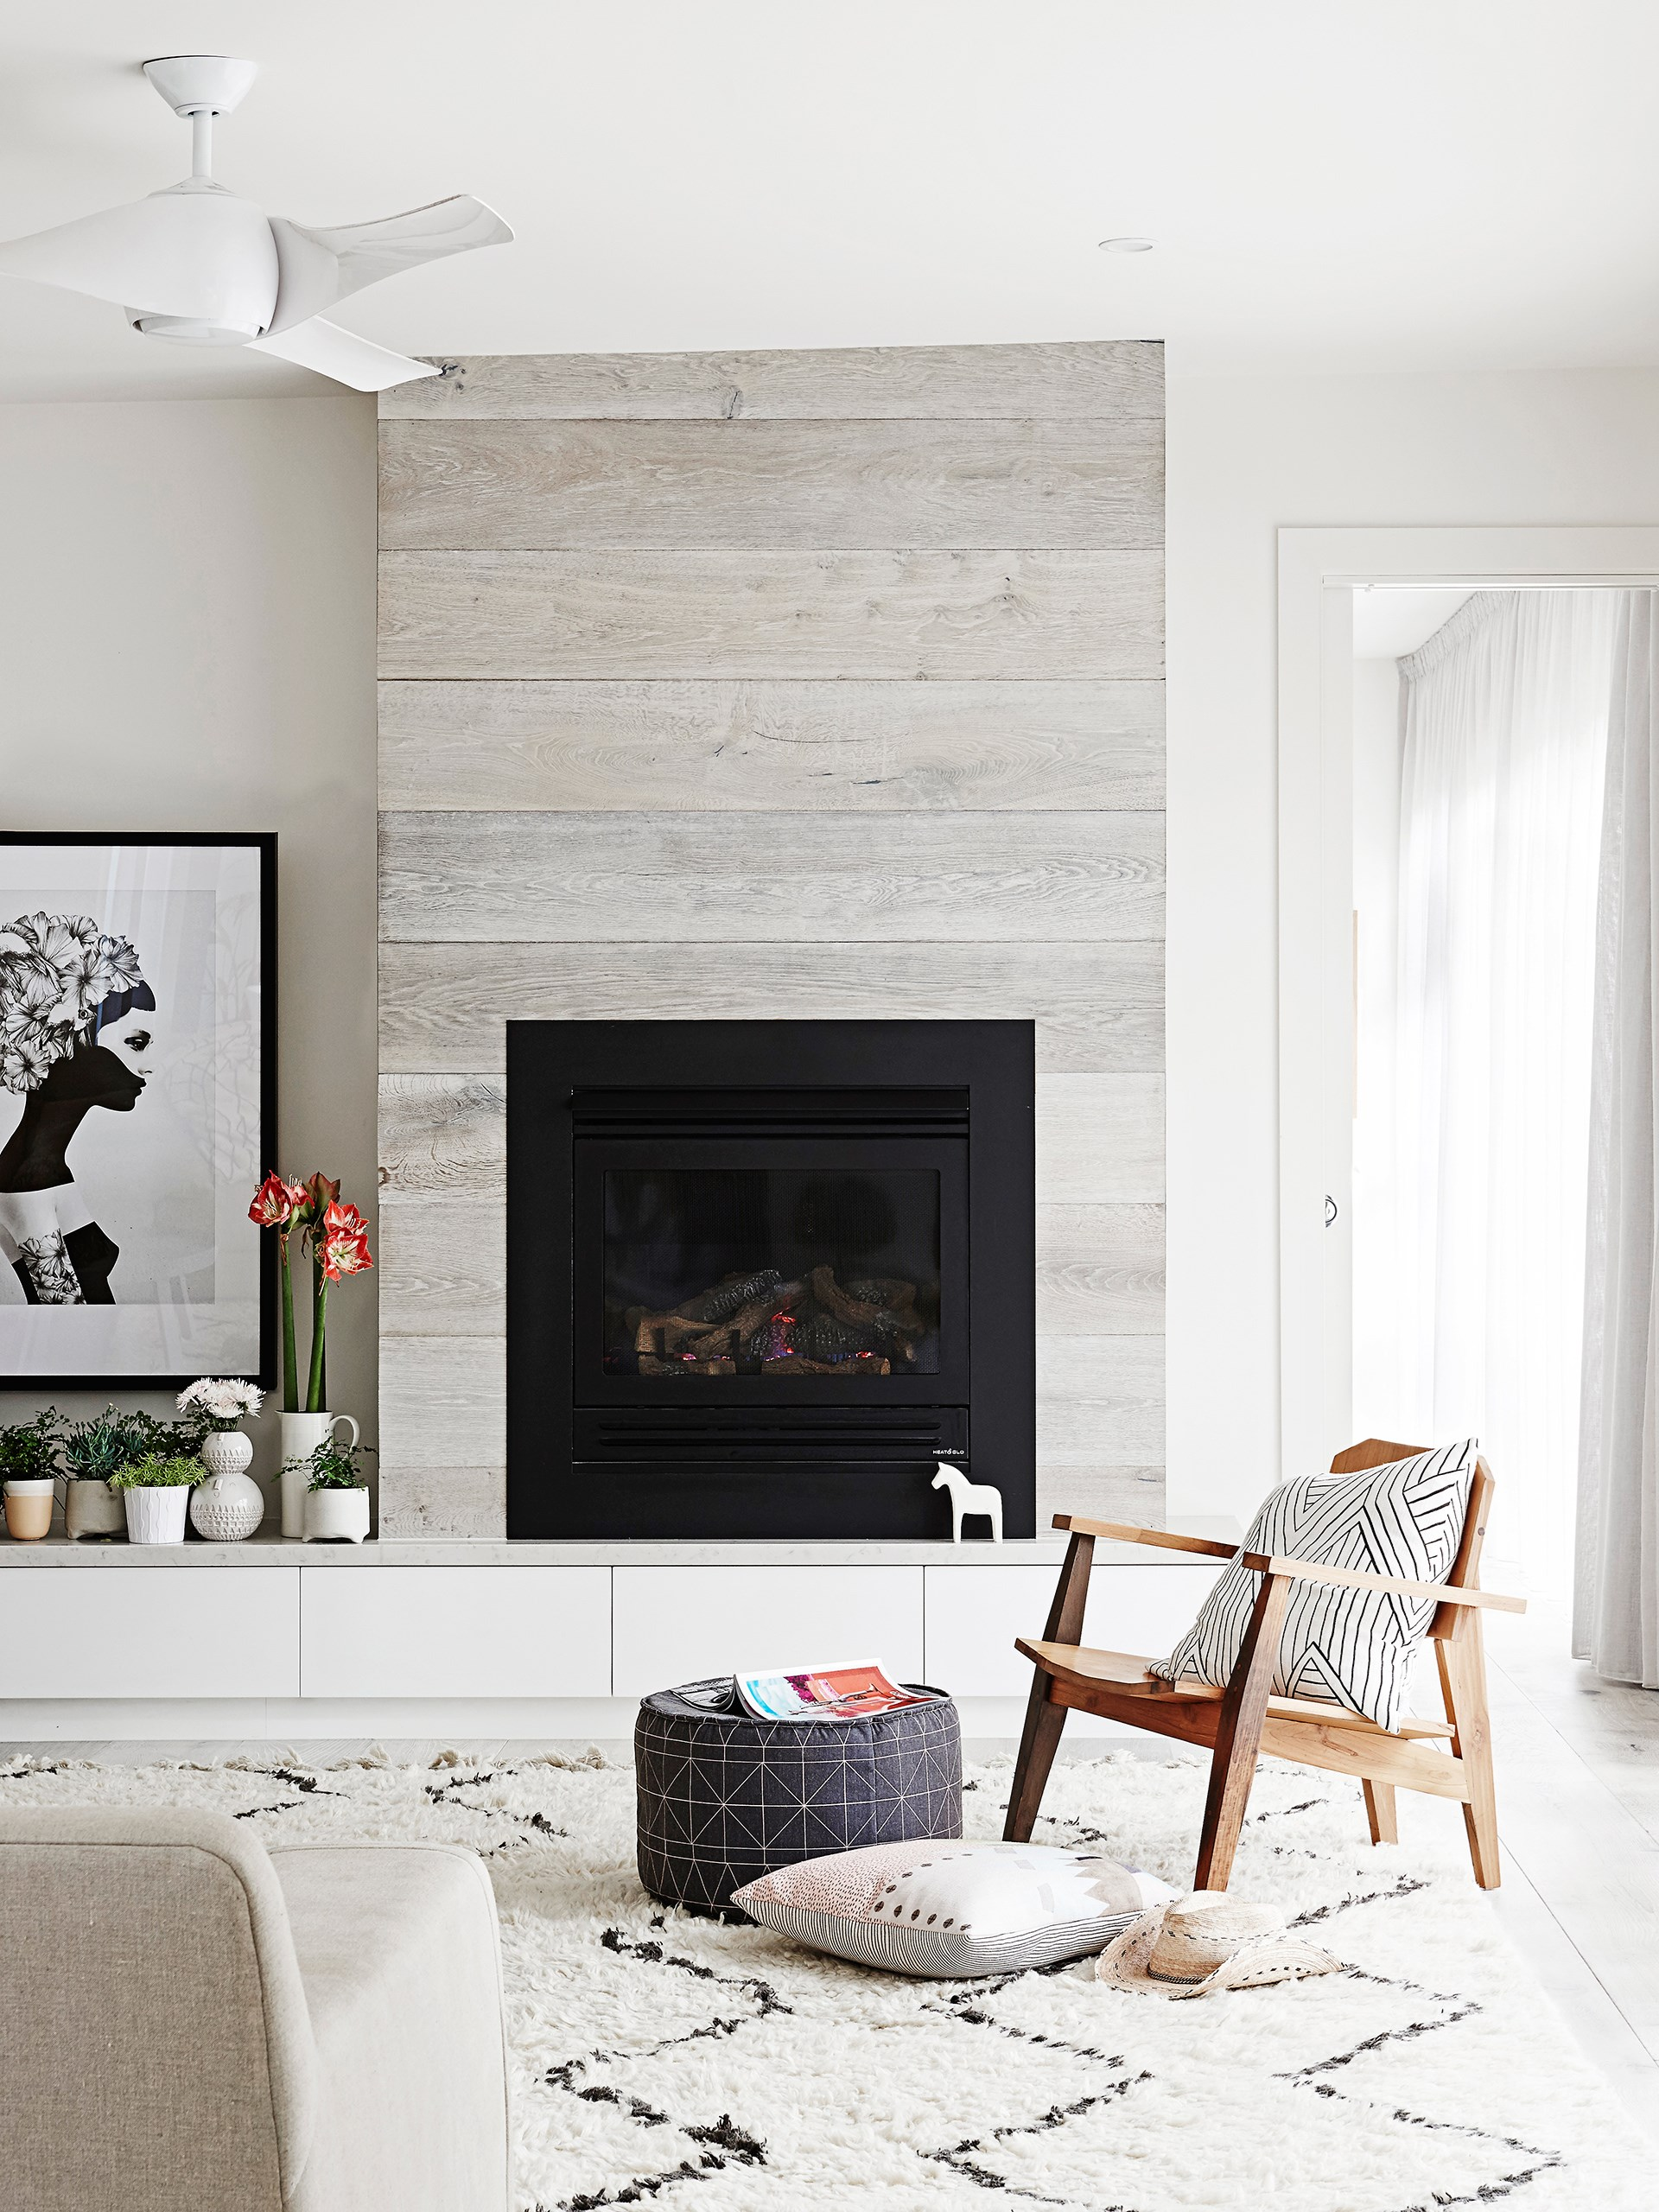 """Hygge was up 285 percent in 2016 as people worldwide learn Denmark's tricks. [> Scandi-style renovation brings bungalow to life](http://www.homestolove.com.au/gallery-scandi-style-renovation-brings-bungalow-to-life-2053